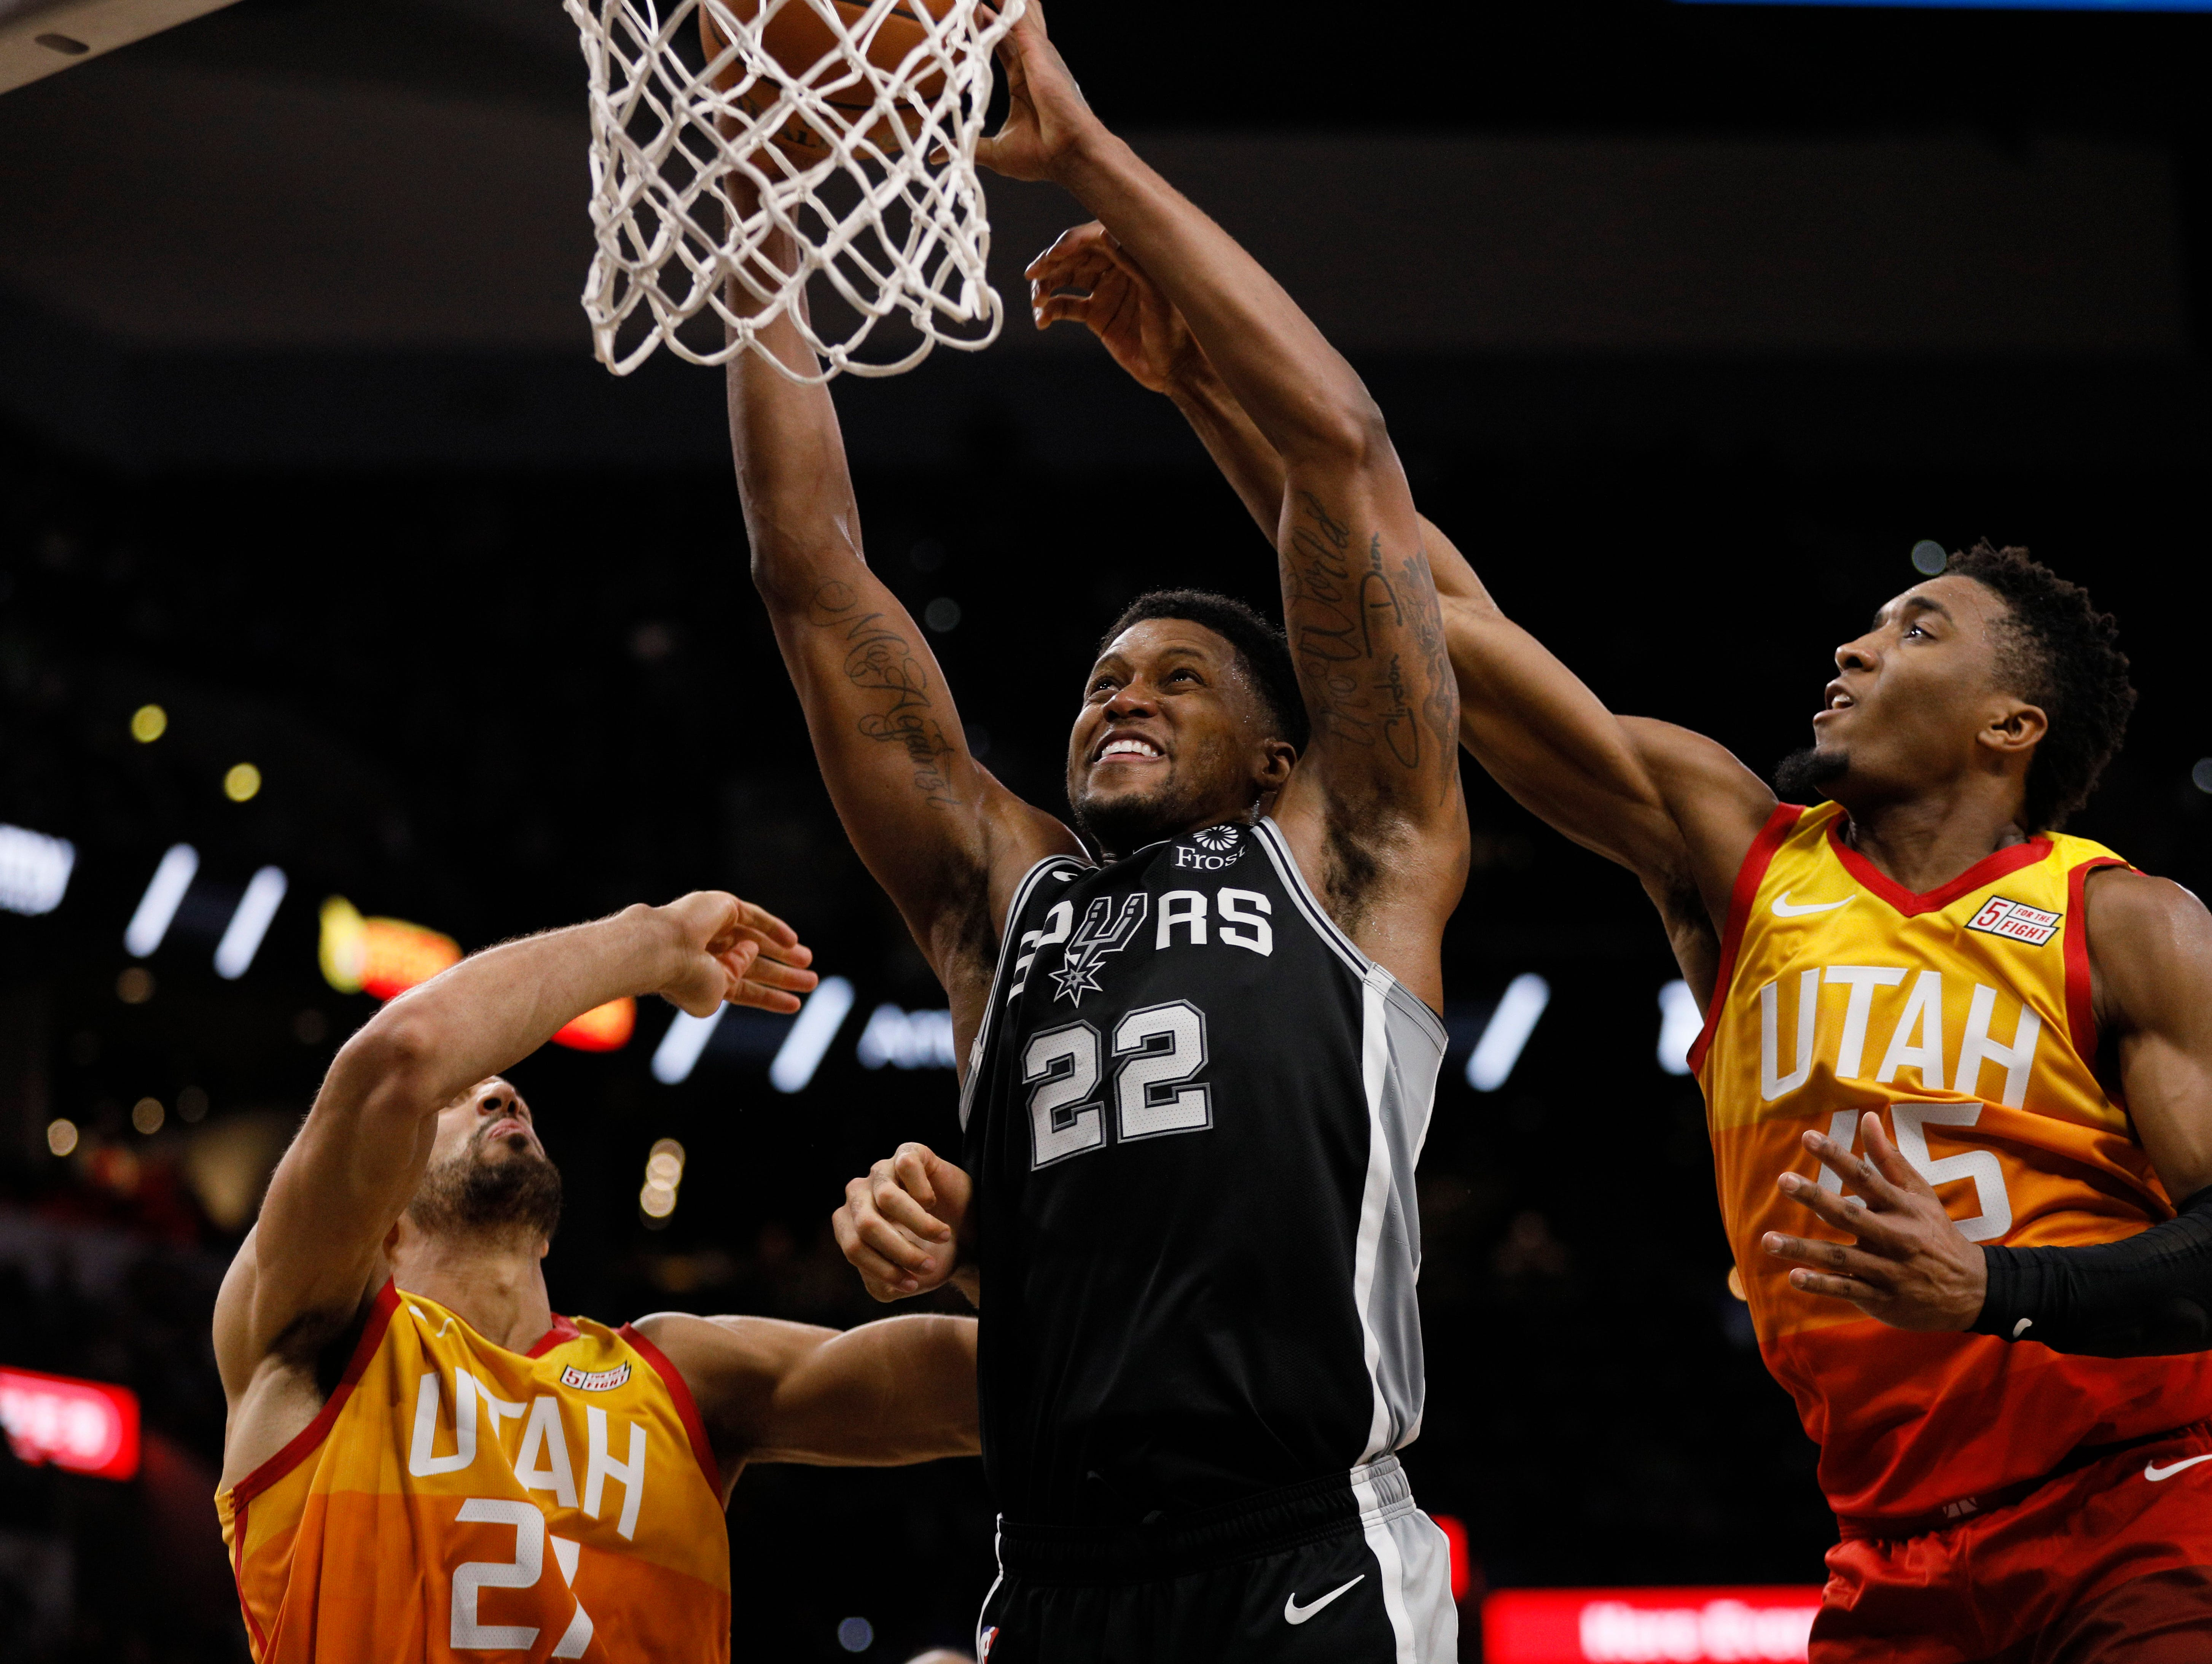 Dec. 9: Spurs forward Rudy Gay (22) goes up strong for the two-handed slam between Jazz defenders Rudy Gobert (27) and Donovan Mitchell (45) during the second half in San Antonio.